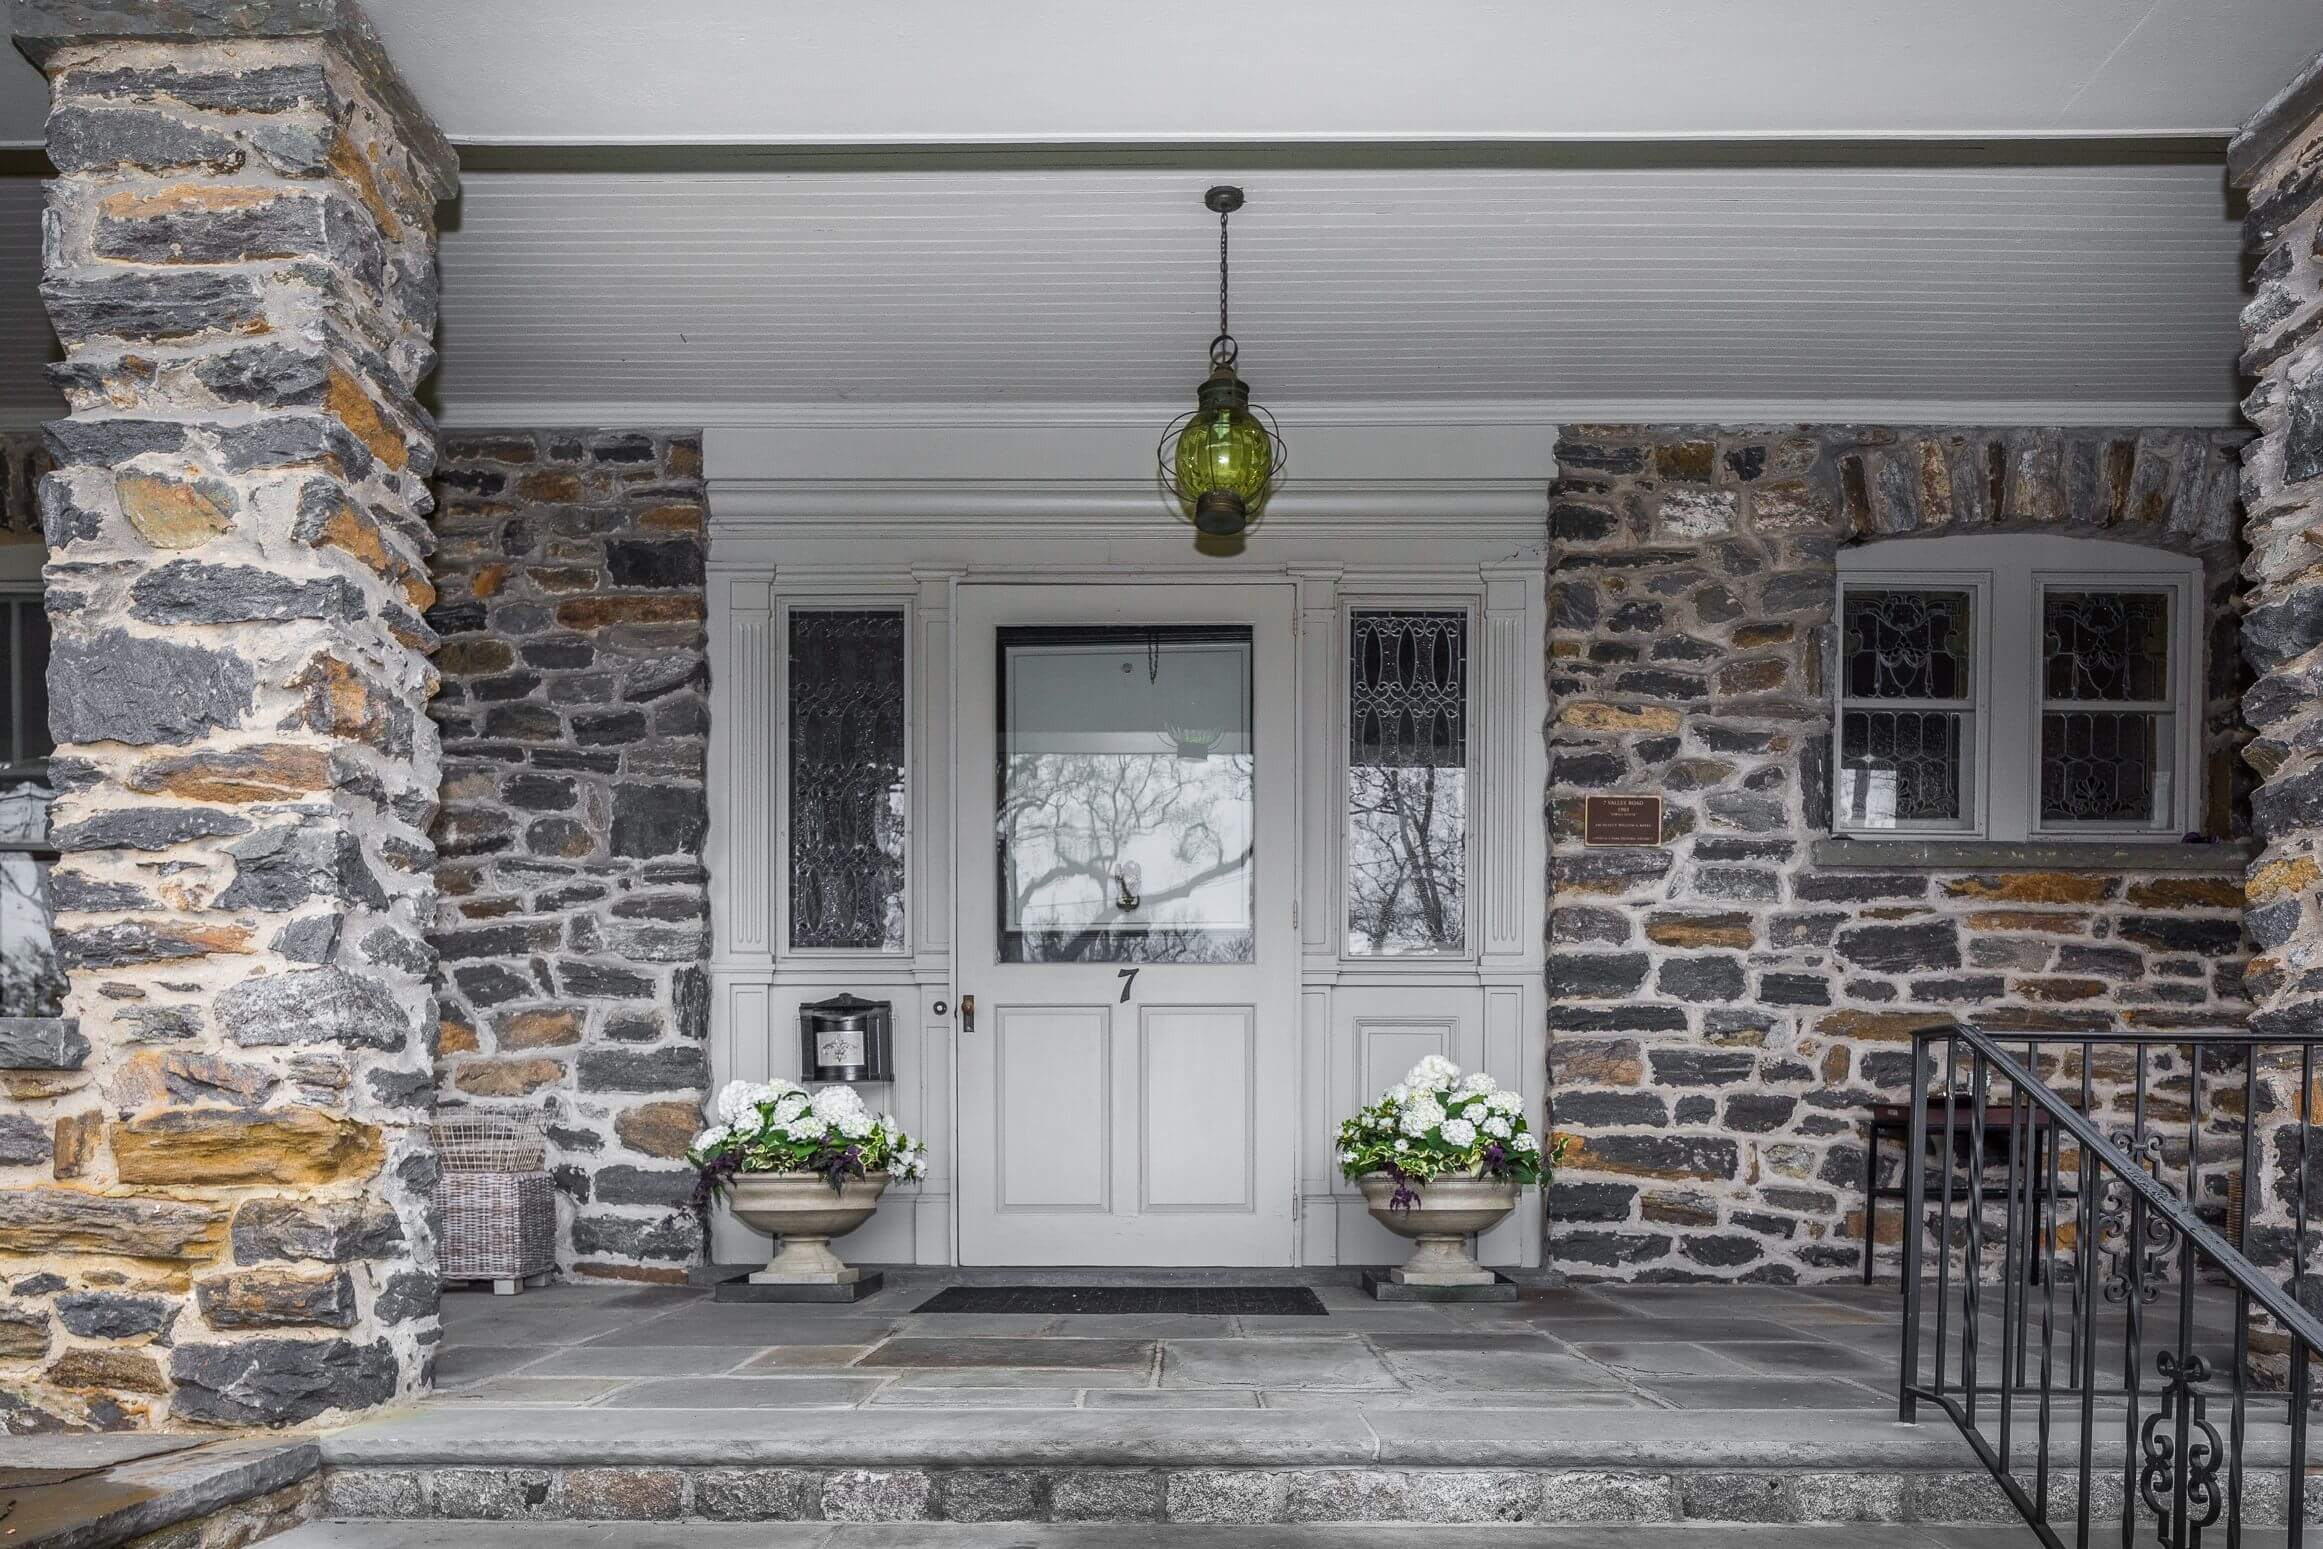 Bronxville house for sale 7 Valley Road